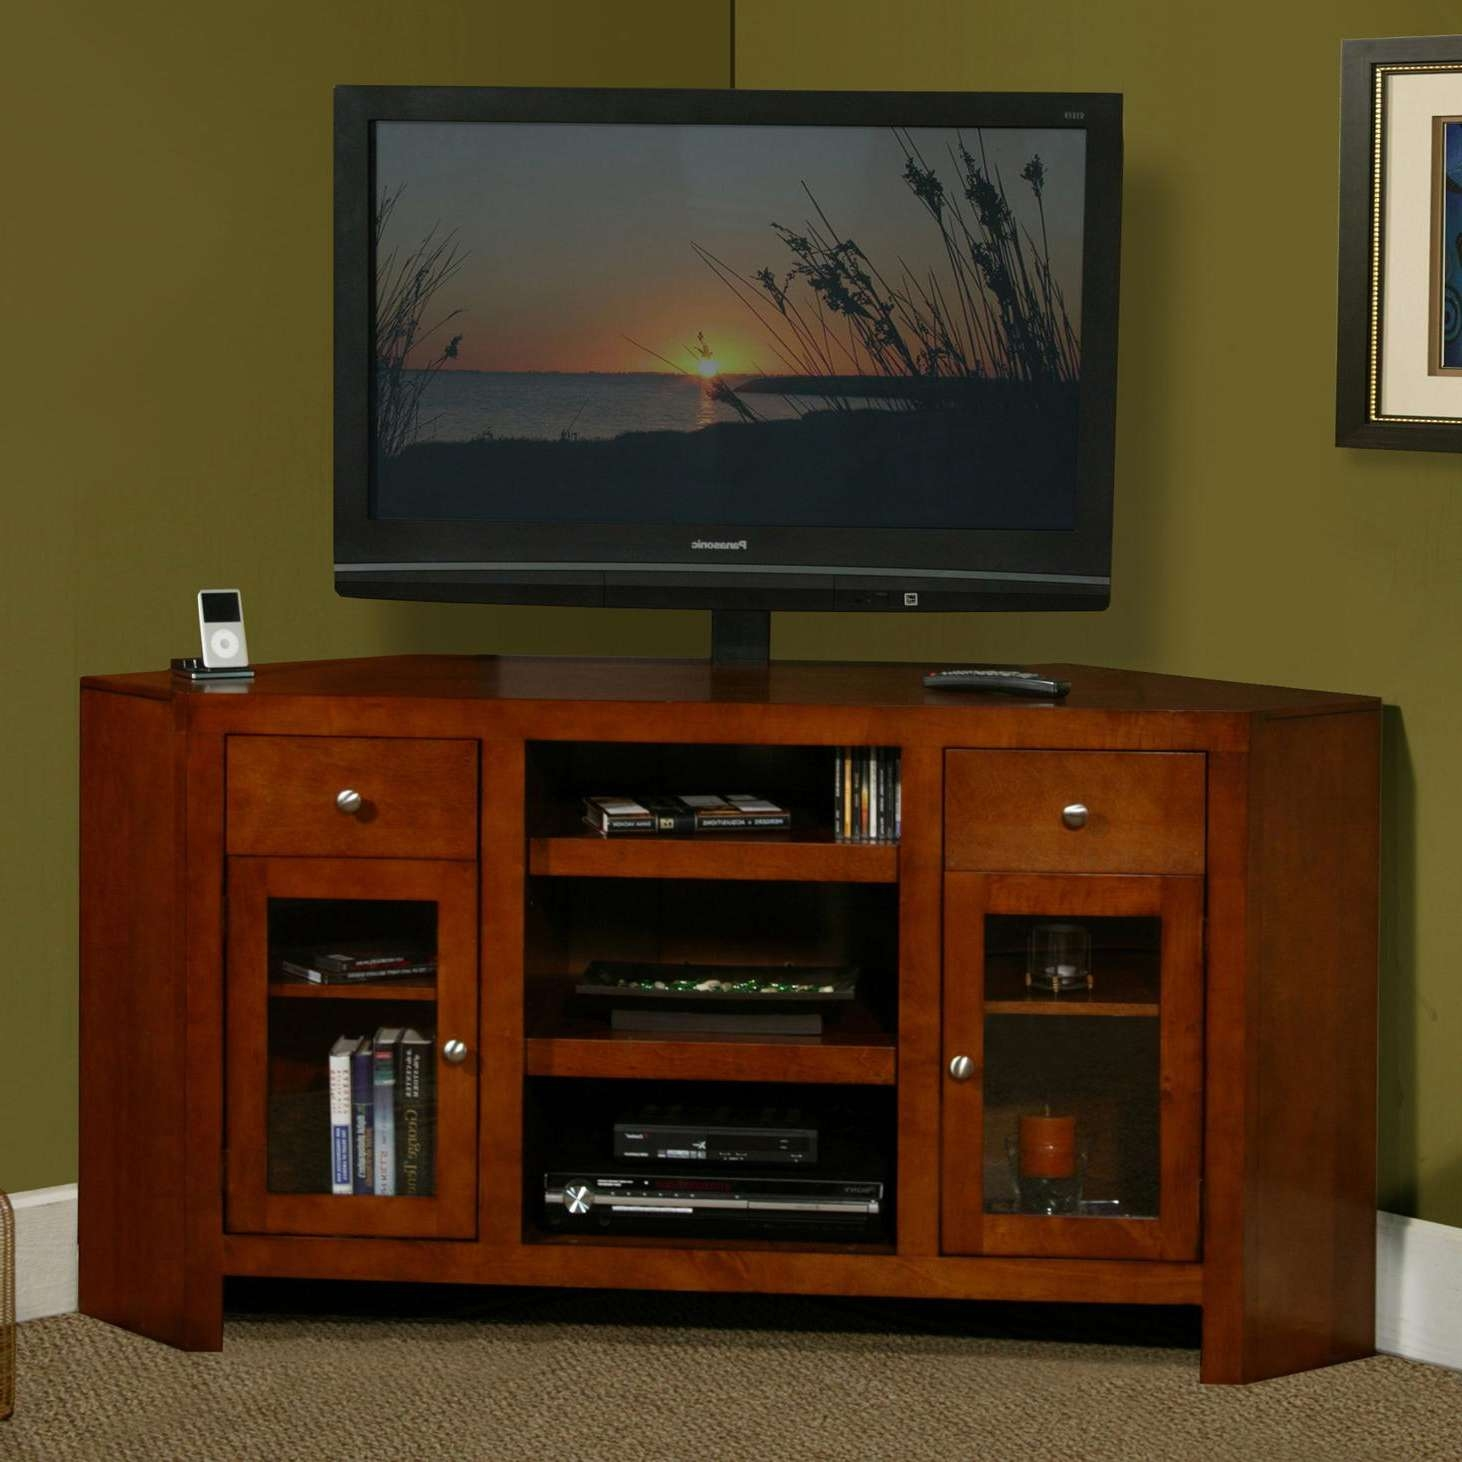 Oak Corner Tv Stand For 55 Inch Tvcorner Tv Stand 55 Inch Tags With Corner Tv Stands 40 Inch (View 18 of 20)